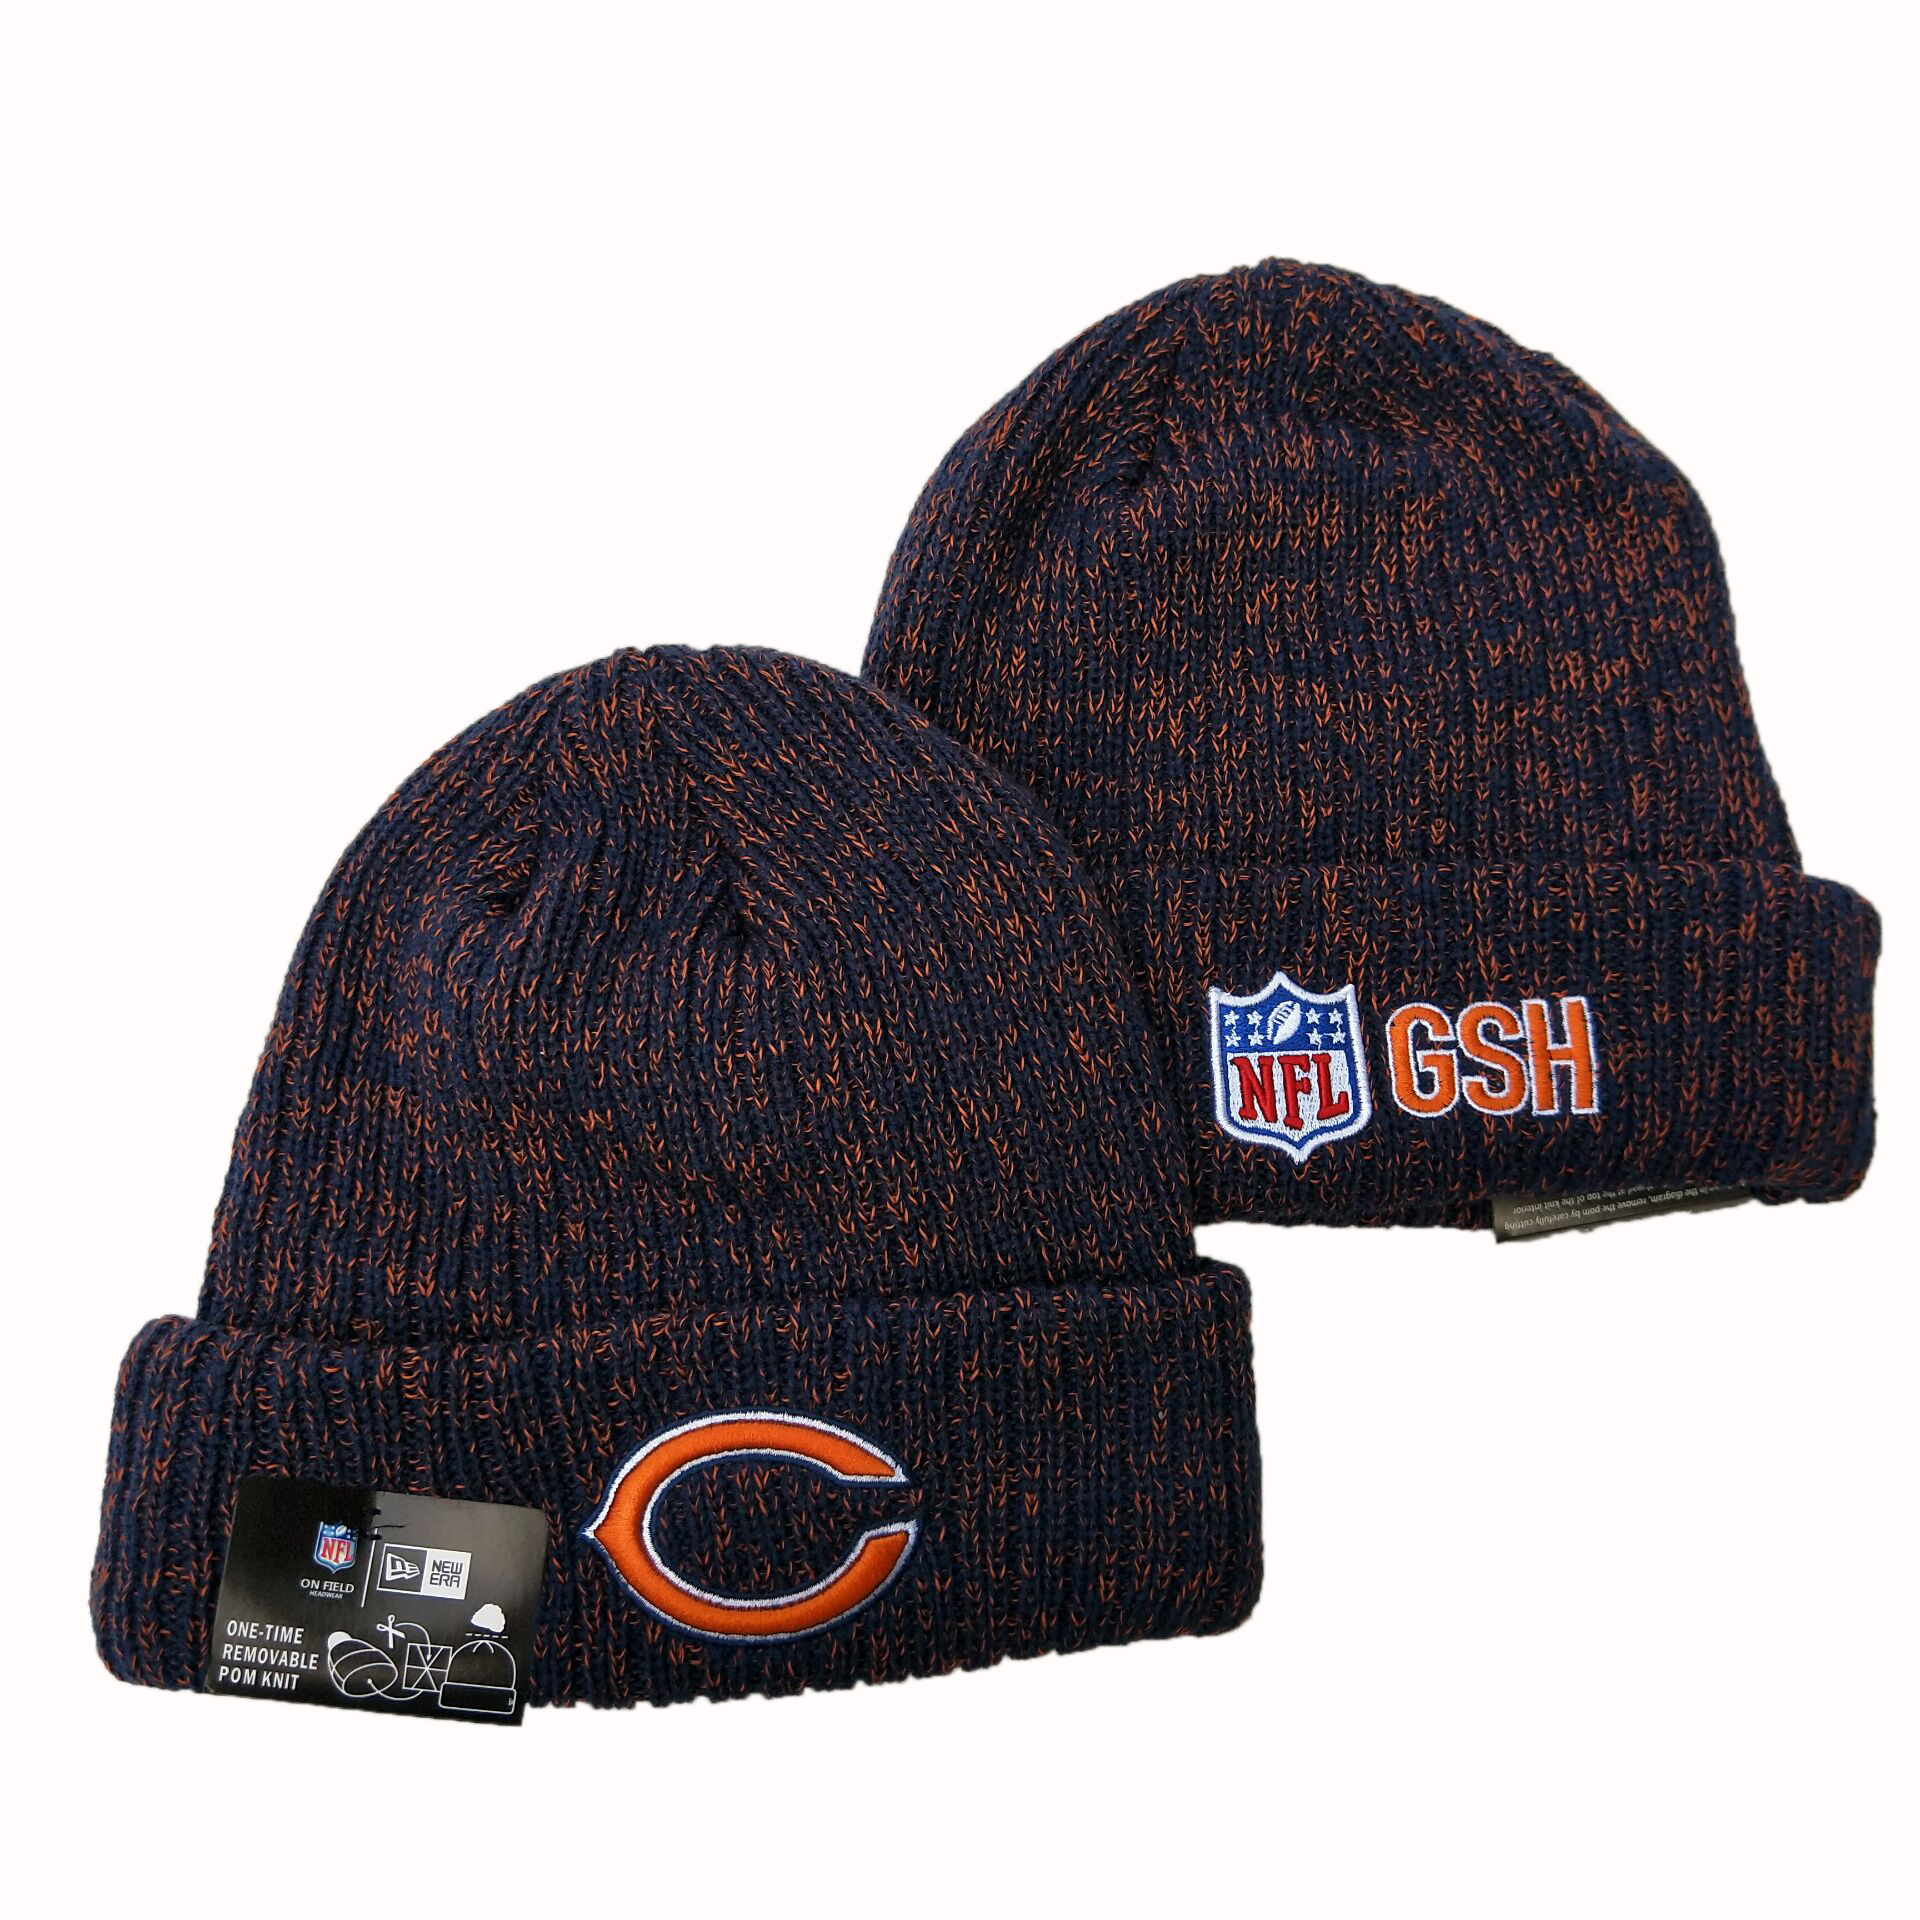 NFL Chicago Bears New Era 2019 Knit Hats 042